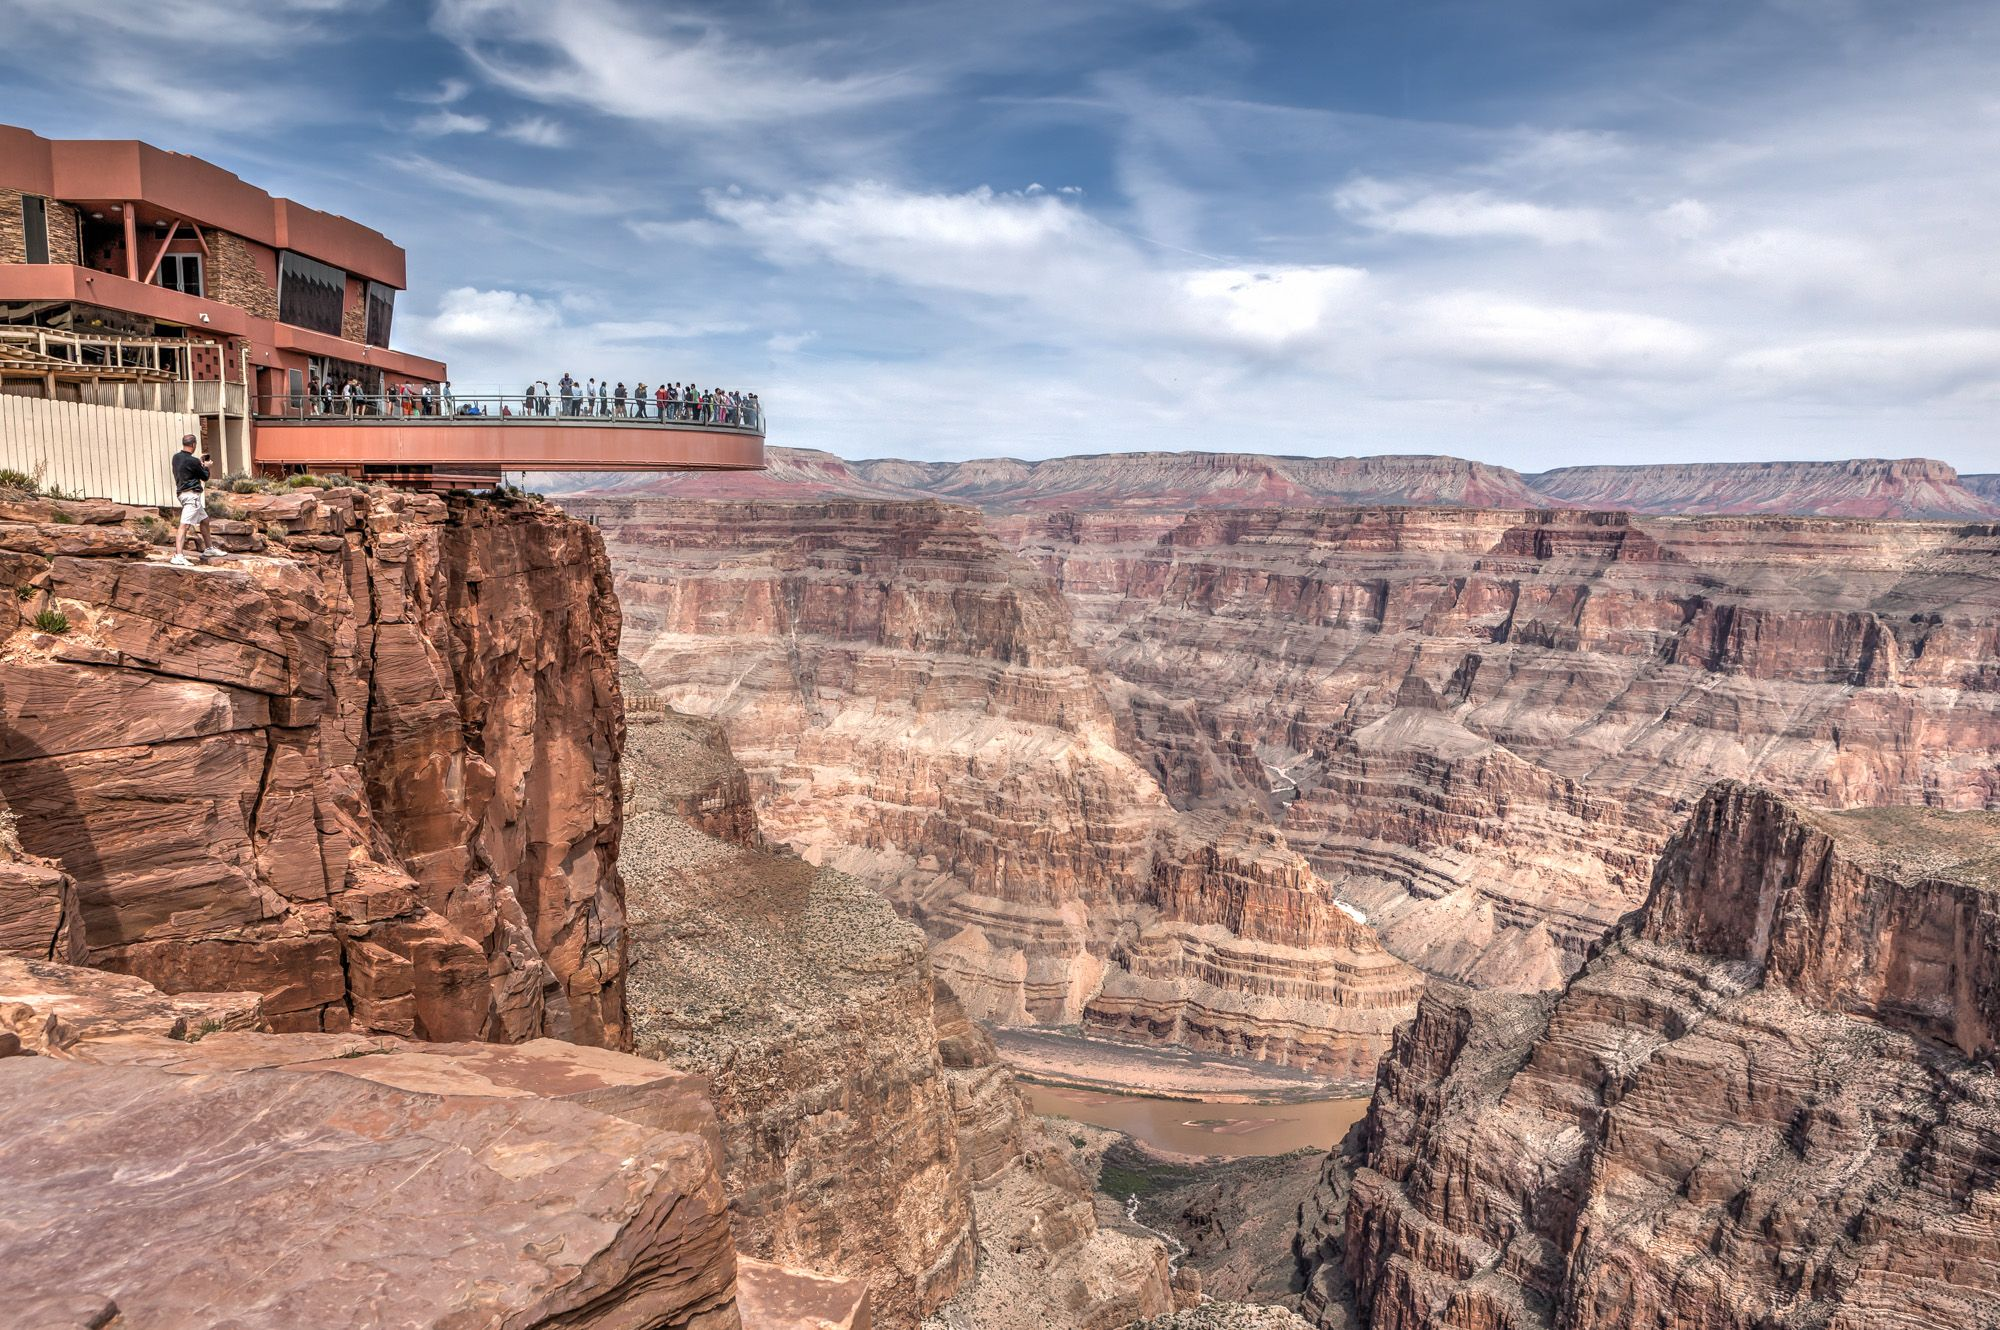 Grand Canyon West and the famous Skywalk